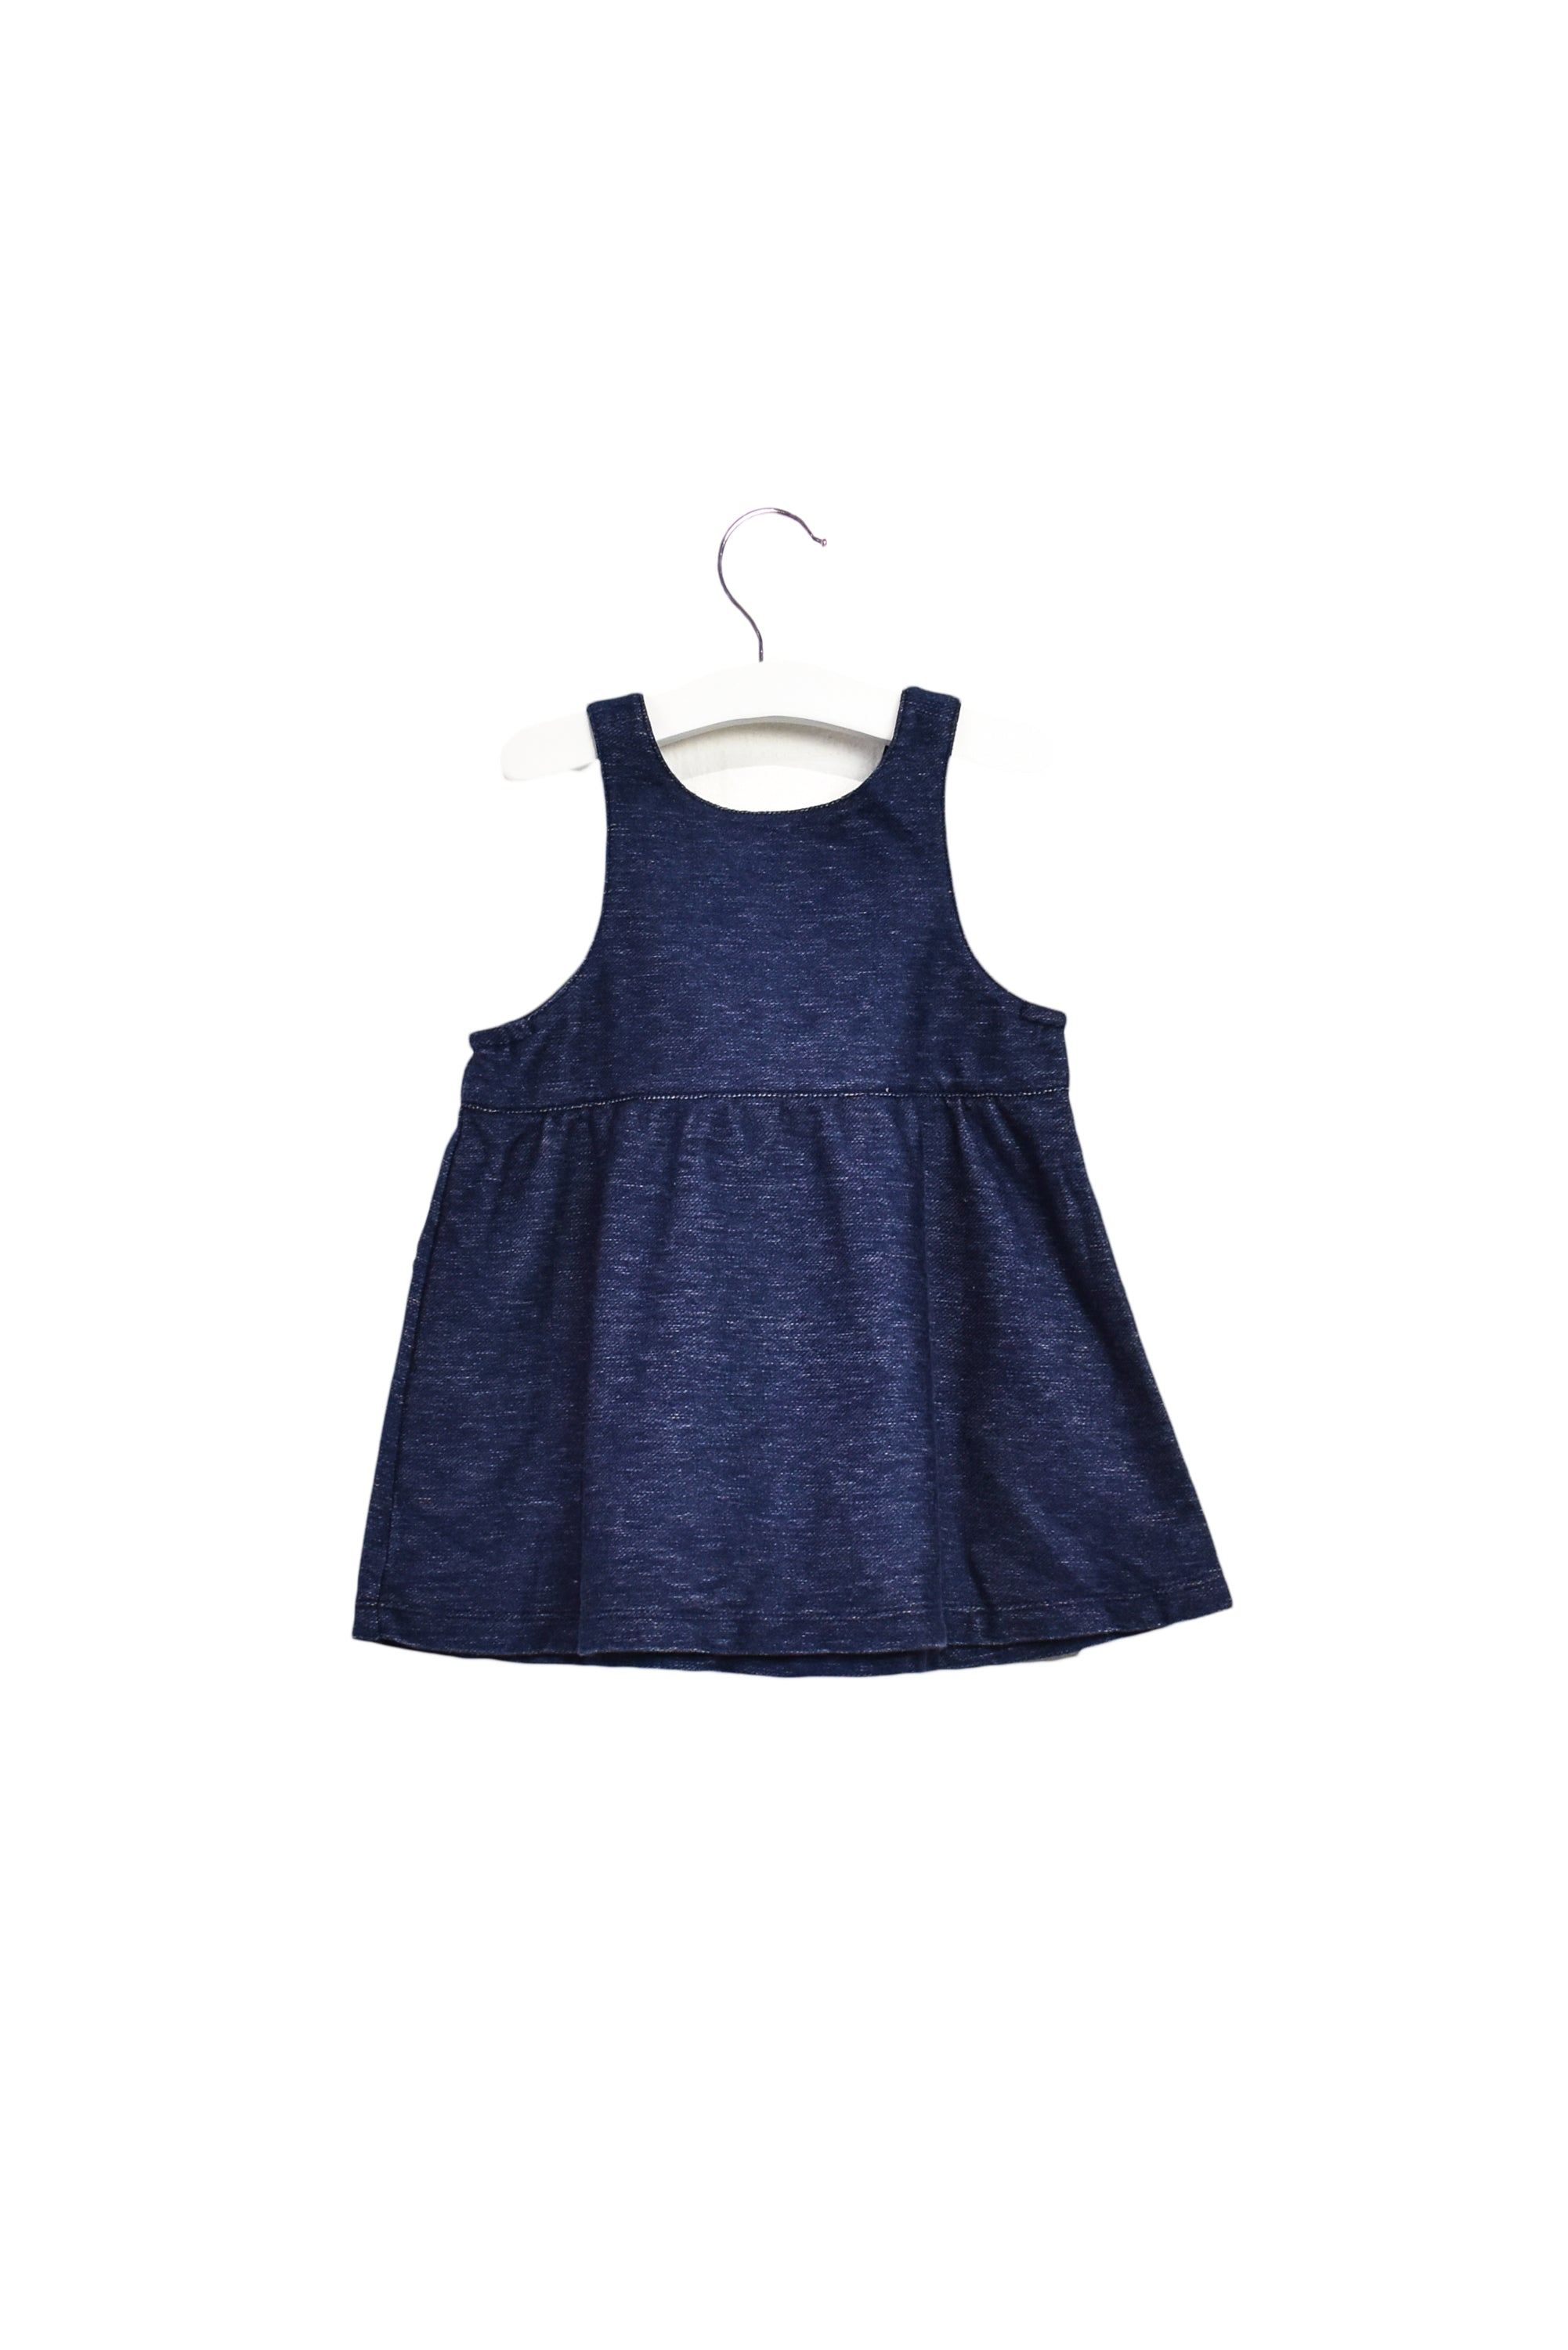 10023650 Miki House Baby~Dress 6-12M at Retykle